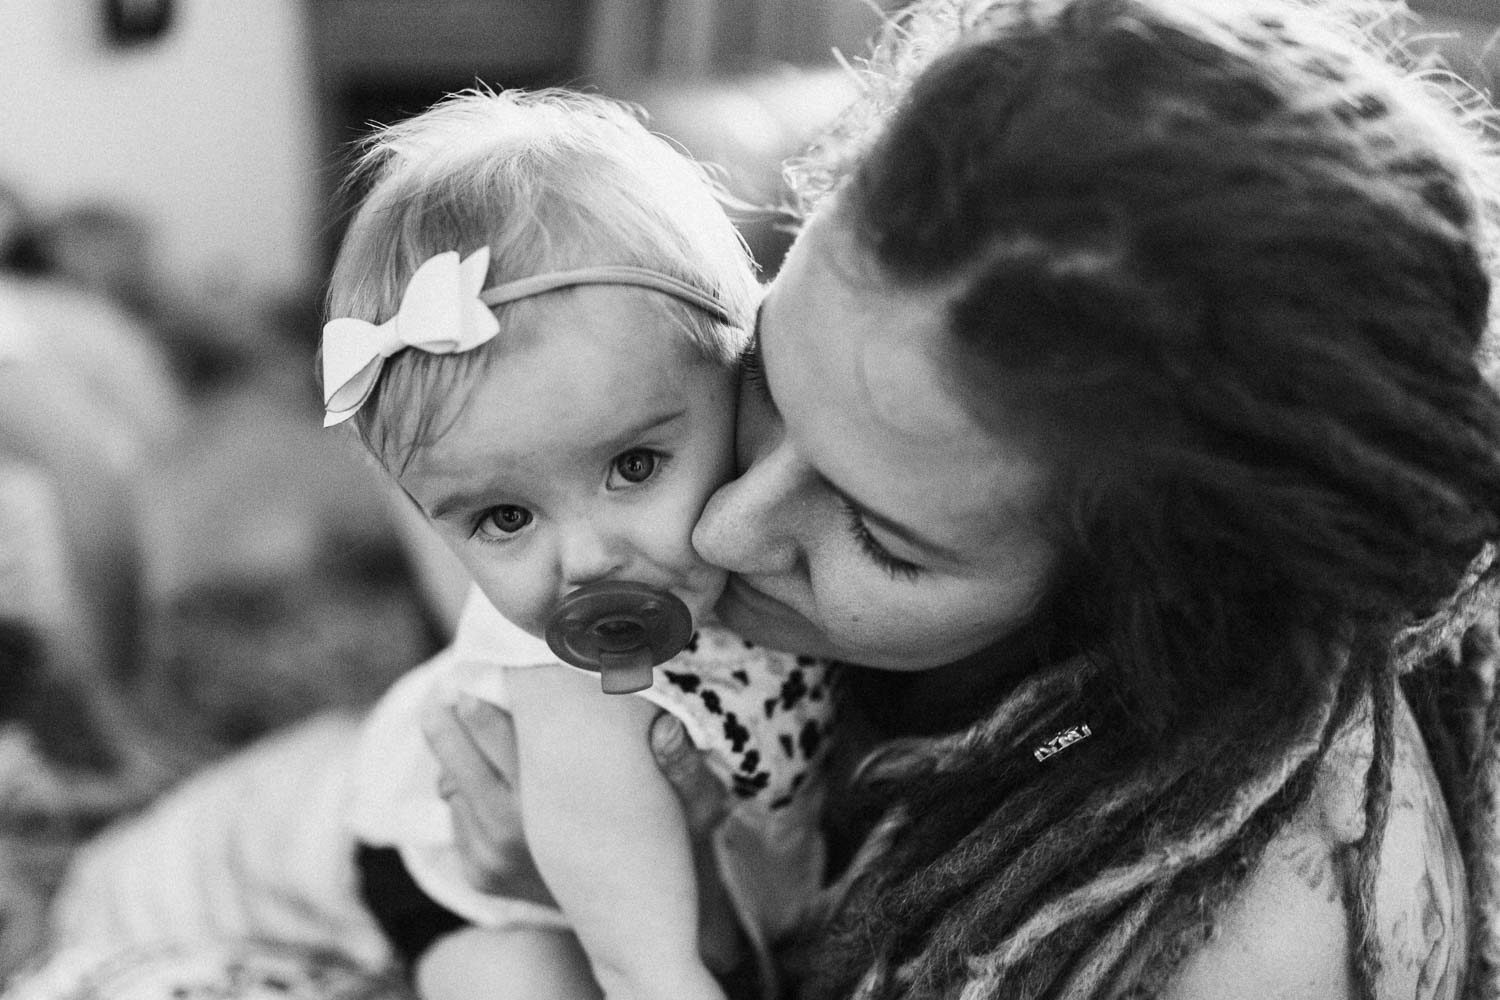 candid-black-and-white-photo-little-girl-looking-at-camera-with-binky-during-in-home-session-with-jen-fairchild-in-salt-lake-city-utah